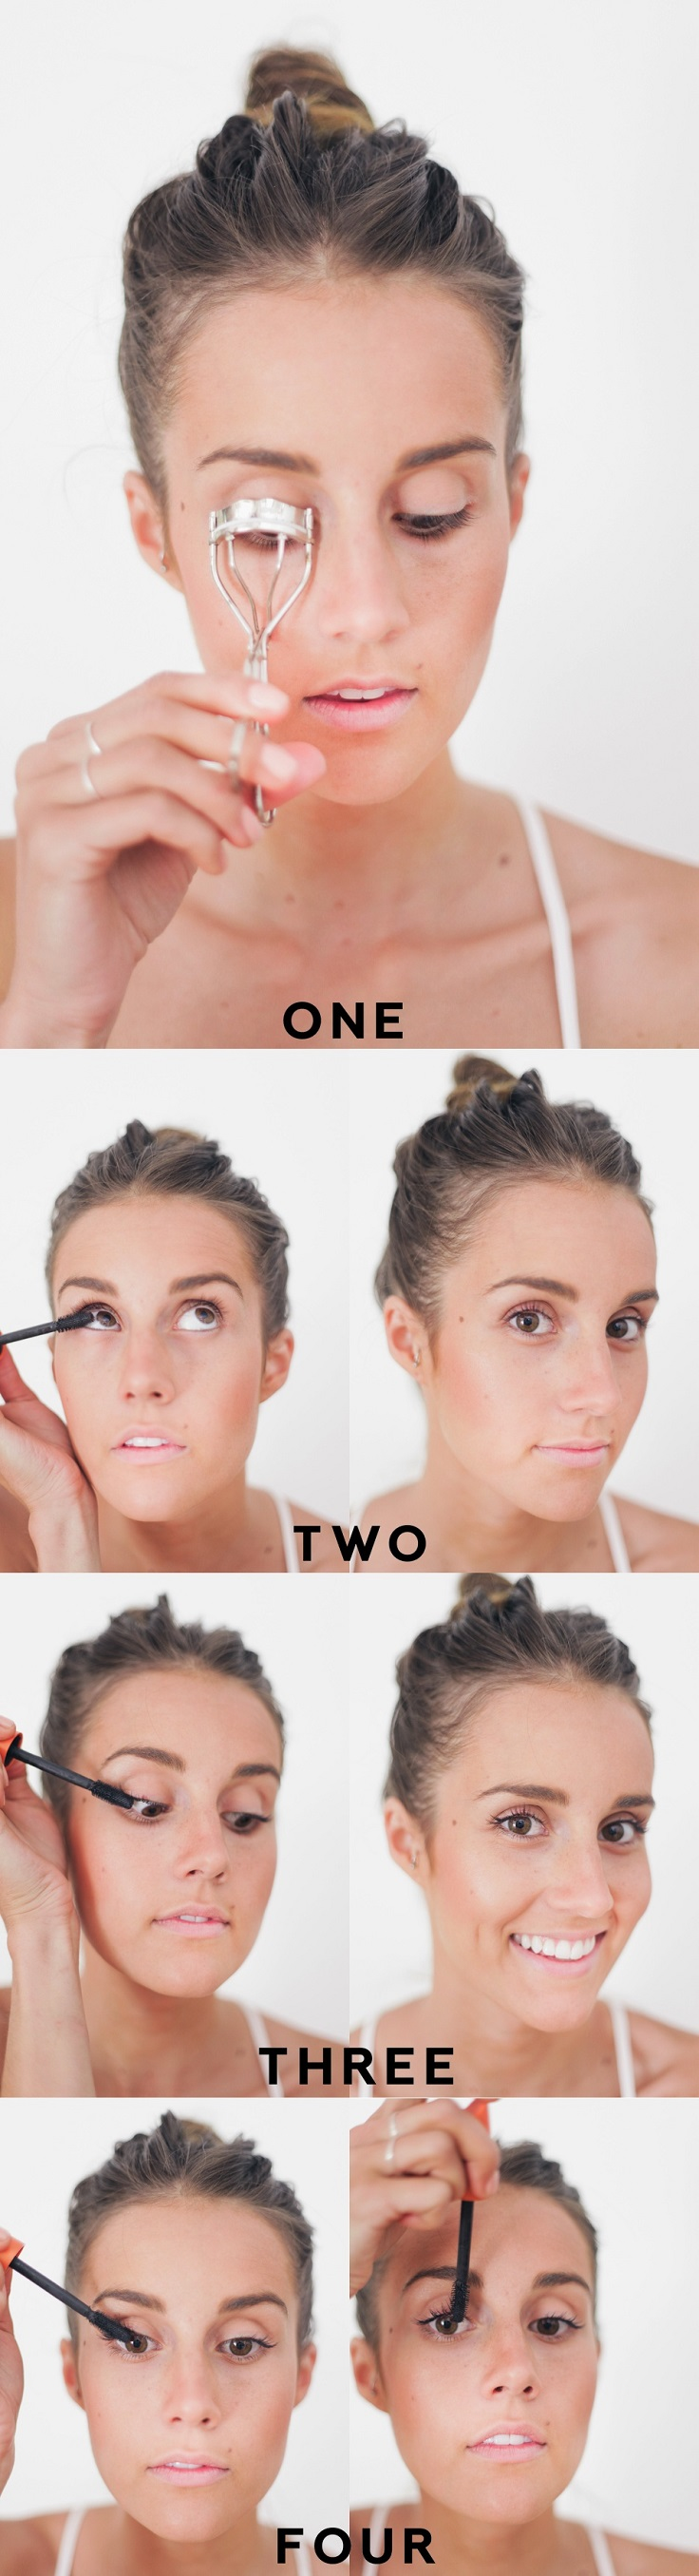 Top 10 Tips On How To Make Your Eyelashes Look Longer All About